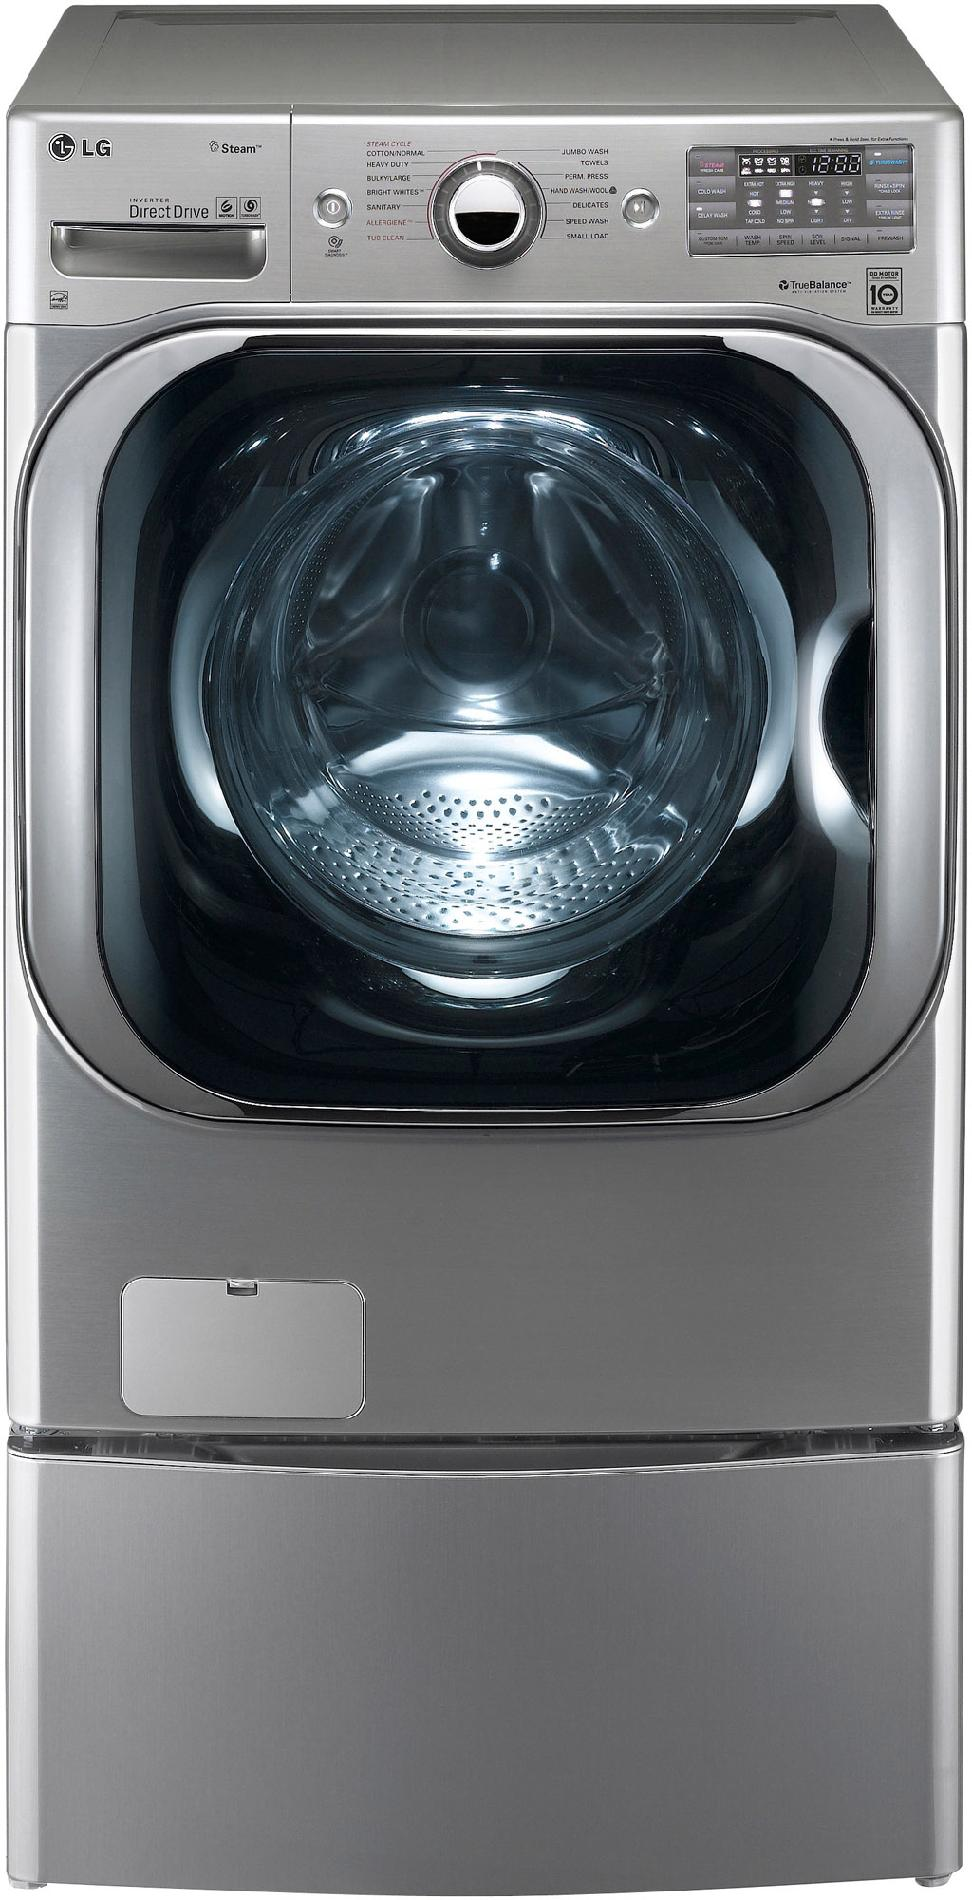 LG WM8000HVA 5.2 cu. ft. Mega-Capacity Steam Front-Load Washer  - Graphite Steel